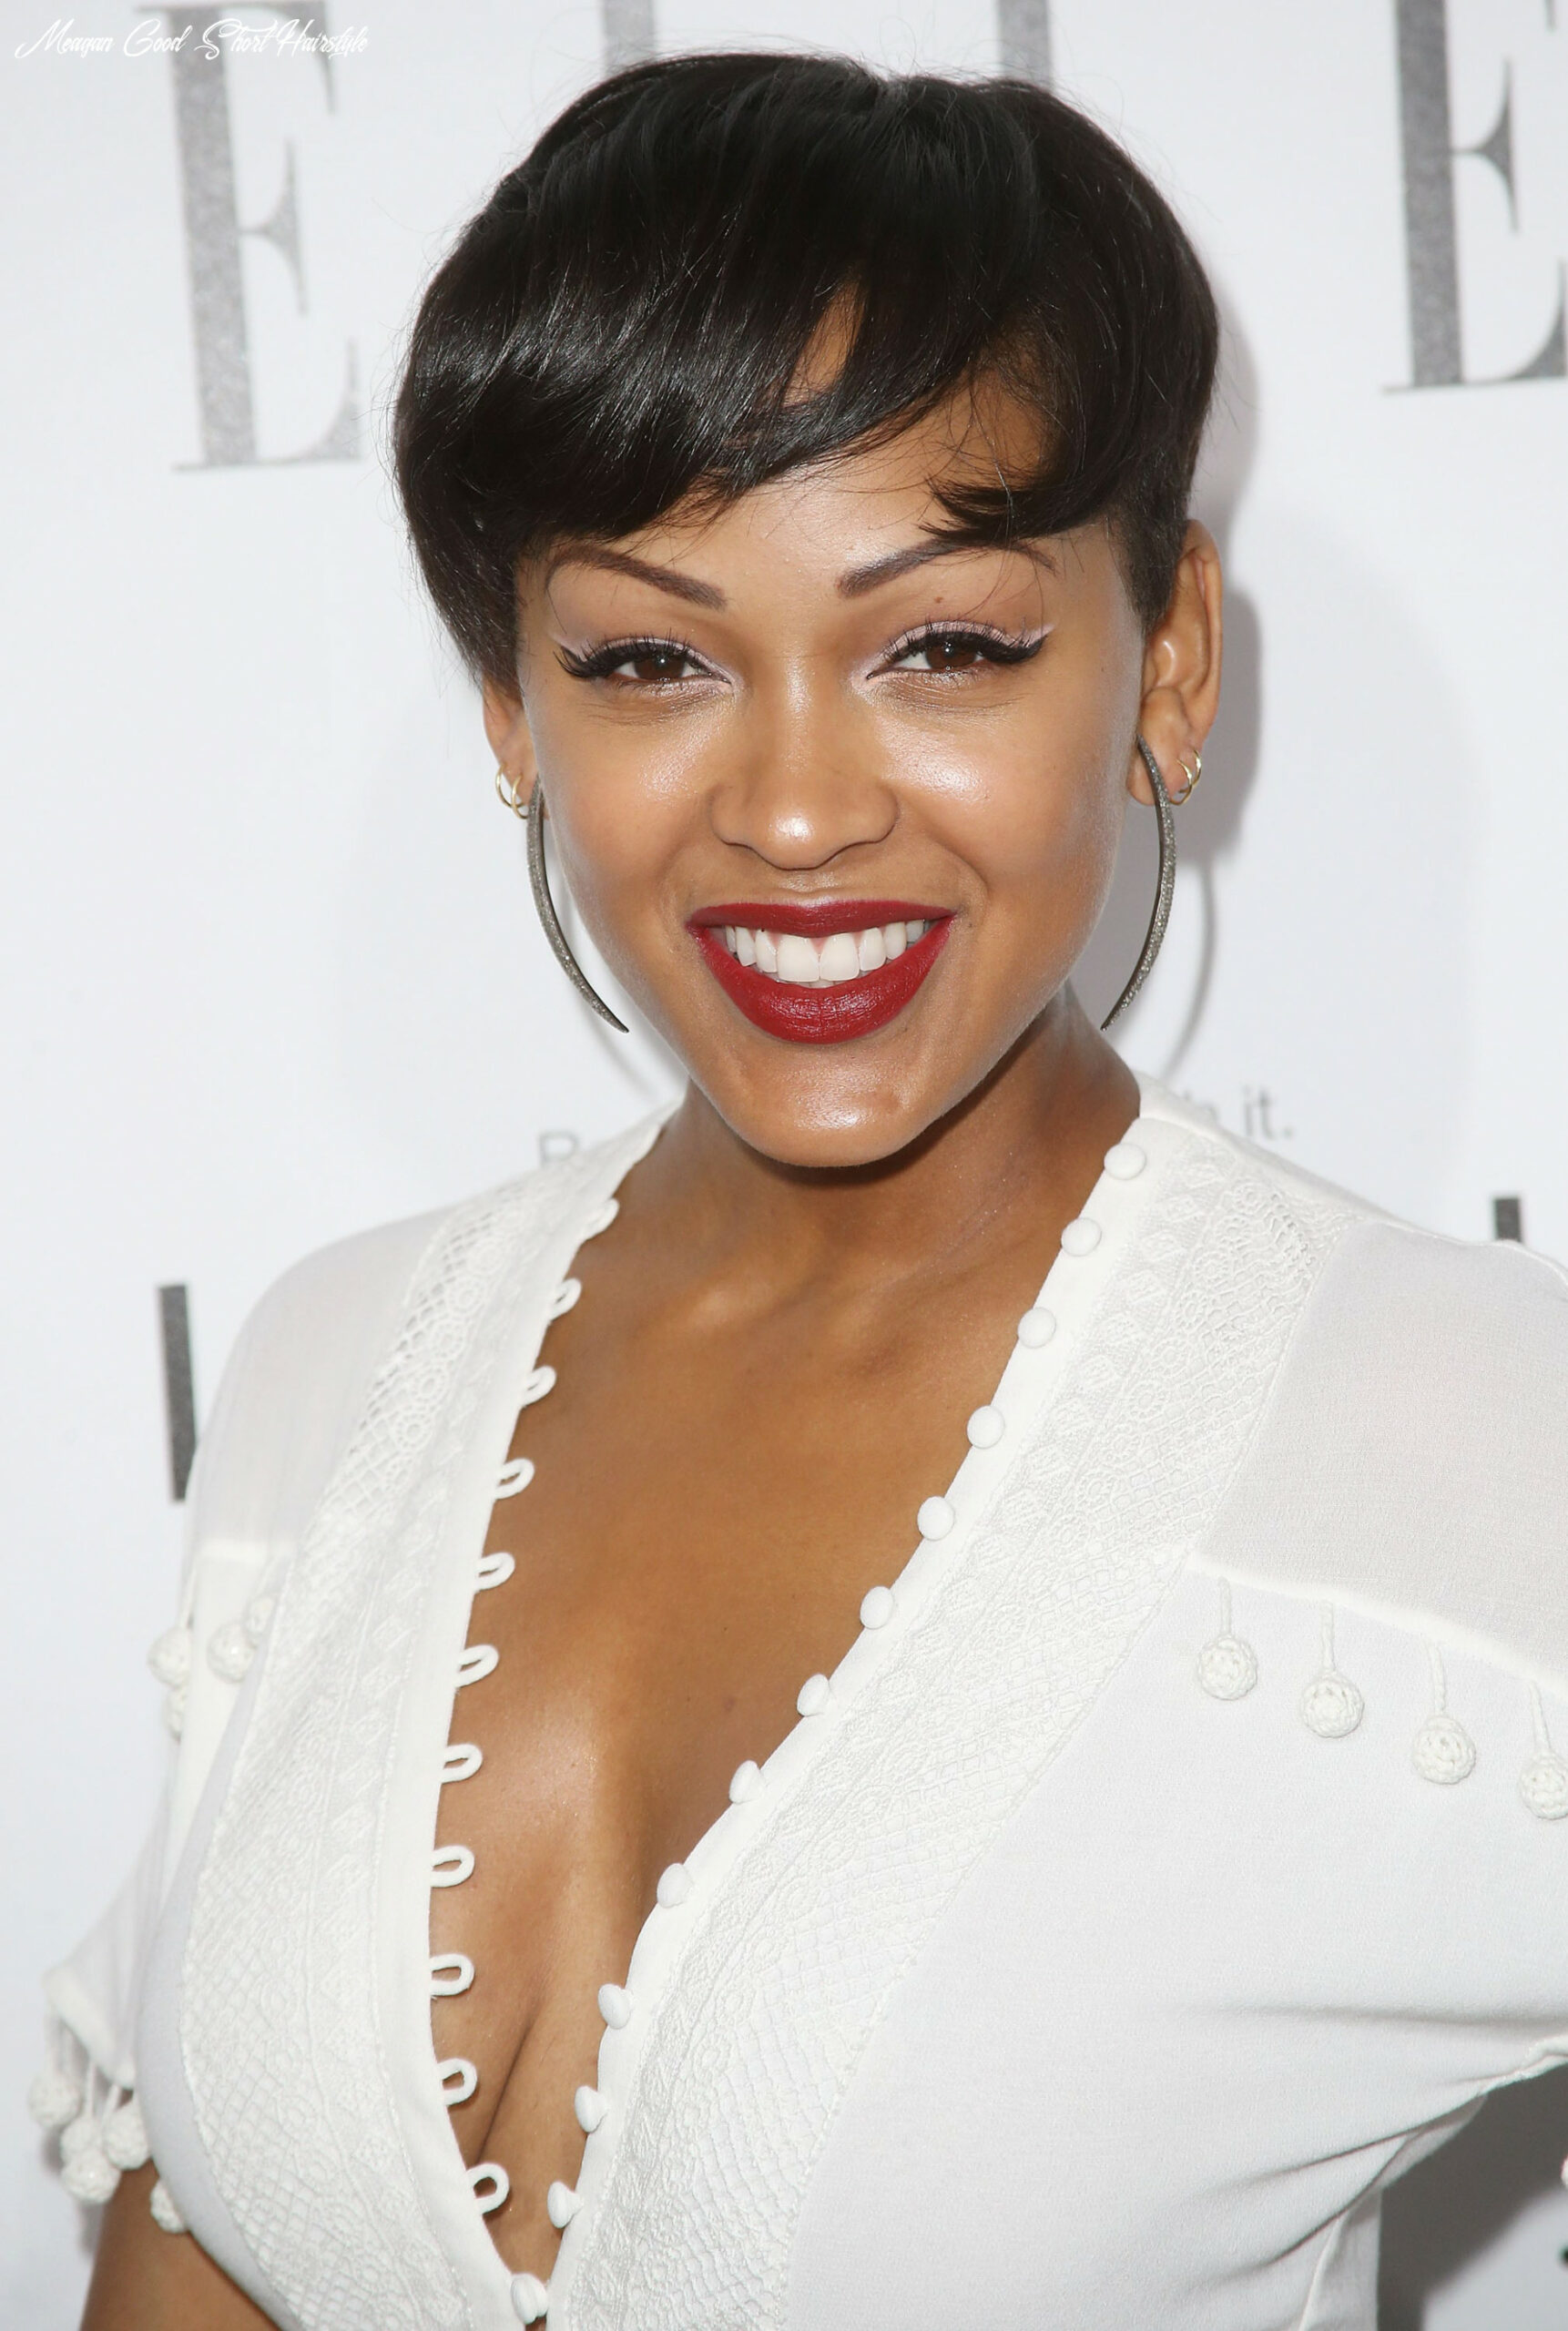 Meagan good with a pixie cut | 10 celebrity pixie haircuts that